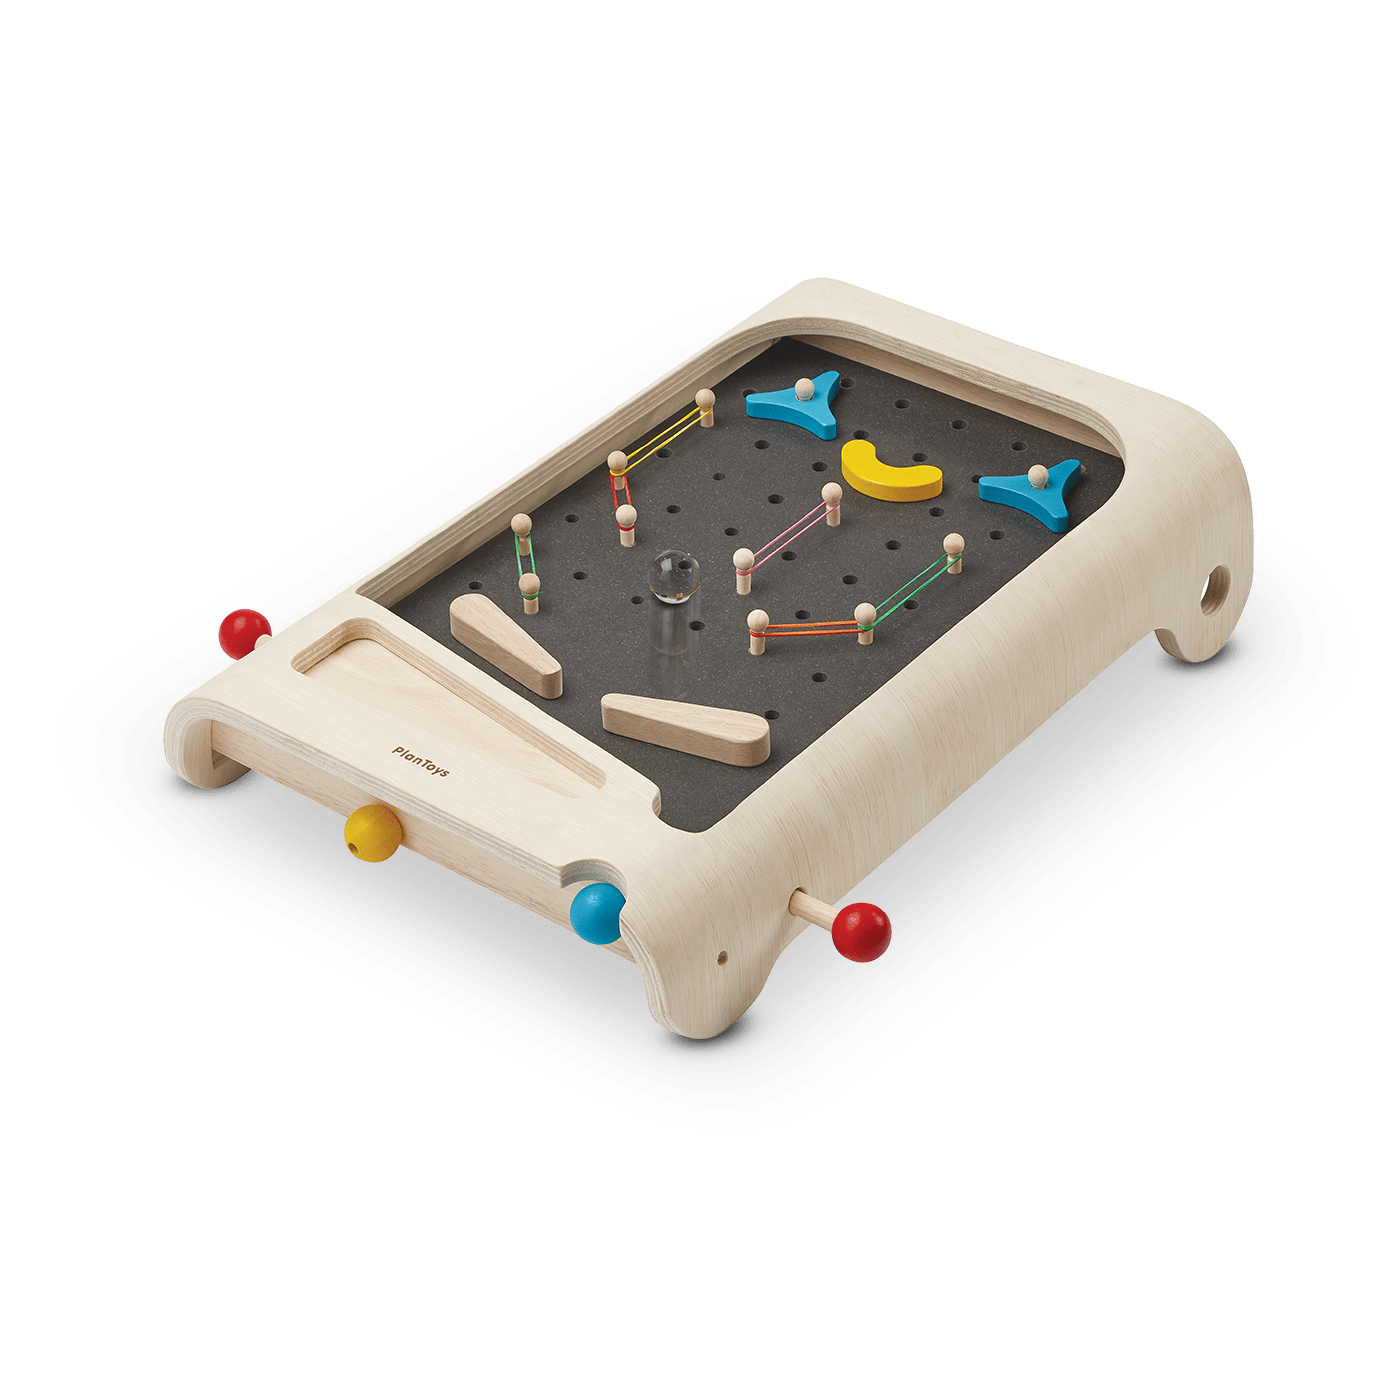 4641_PlanToys_PINBALL_Game_and_Puzzles_Concentration_Coordination_Logical_Social_Language_and_Communications_Problem_Solving_3yrs_Wooden_toys_Education_toys_Safety_Toys_Non-toxic_0.png